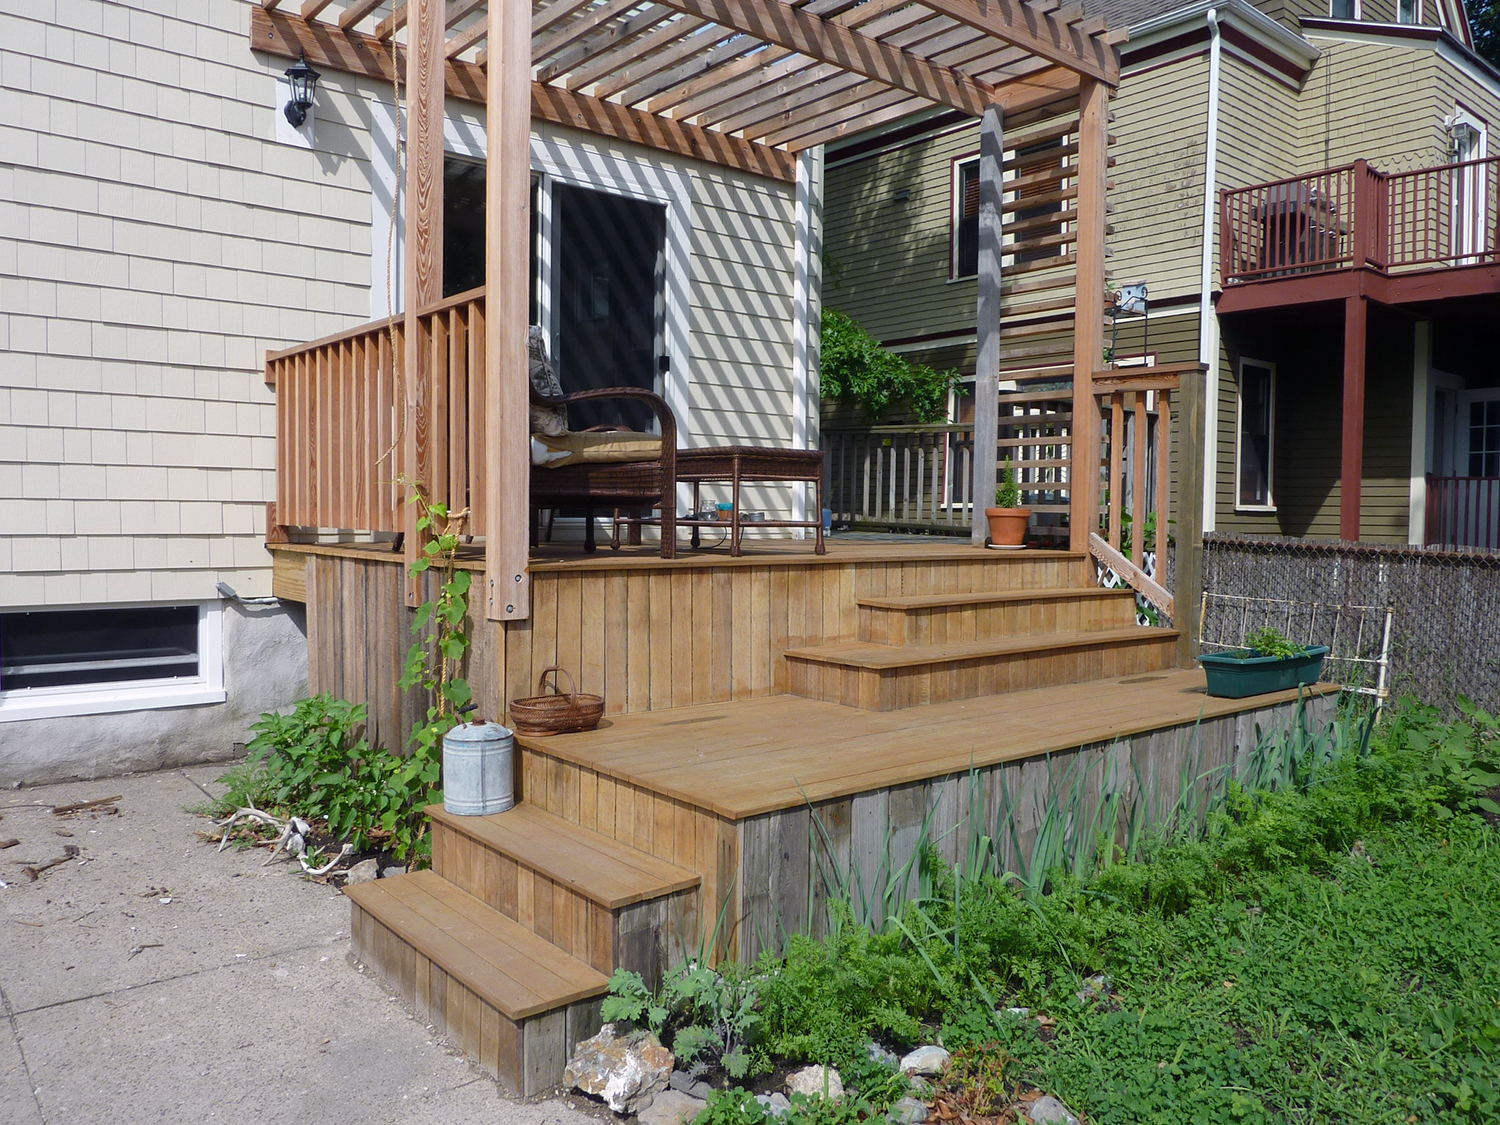 Cora's back deck is made of reclaimed lumber.